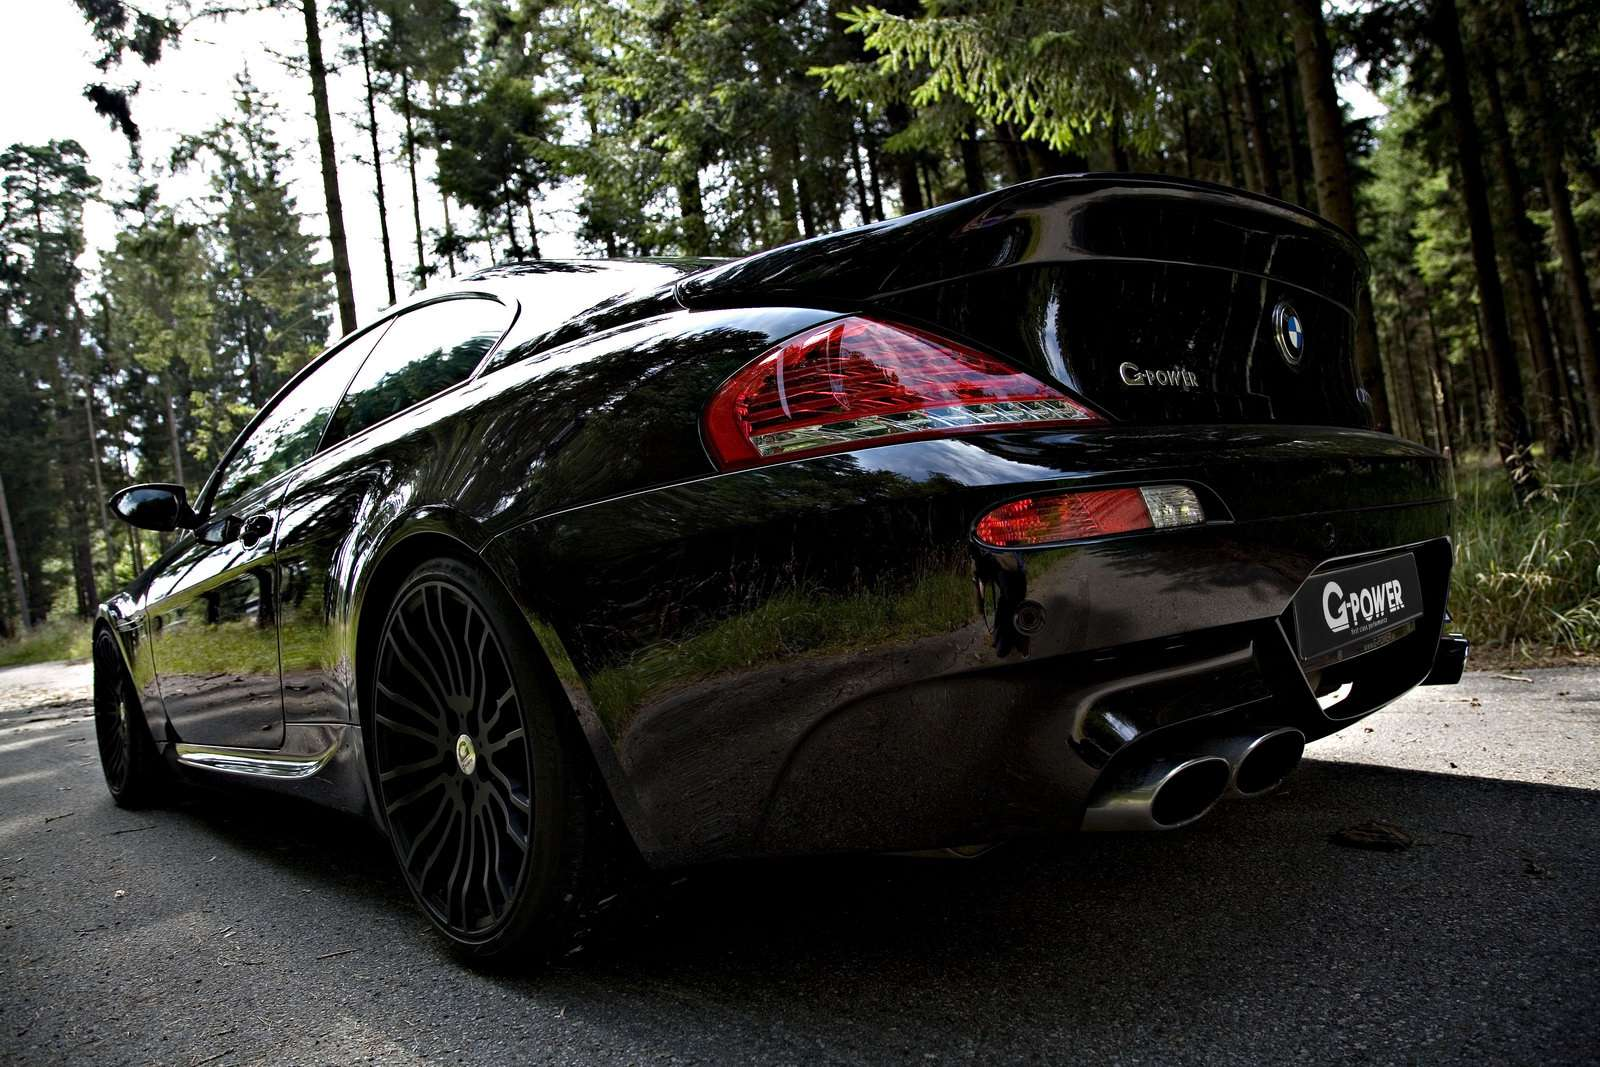 G-Power BMW M6 Hurricane RR 800 listopad 2010